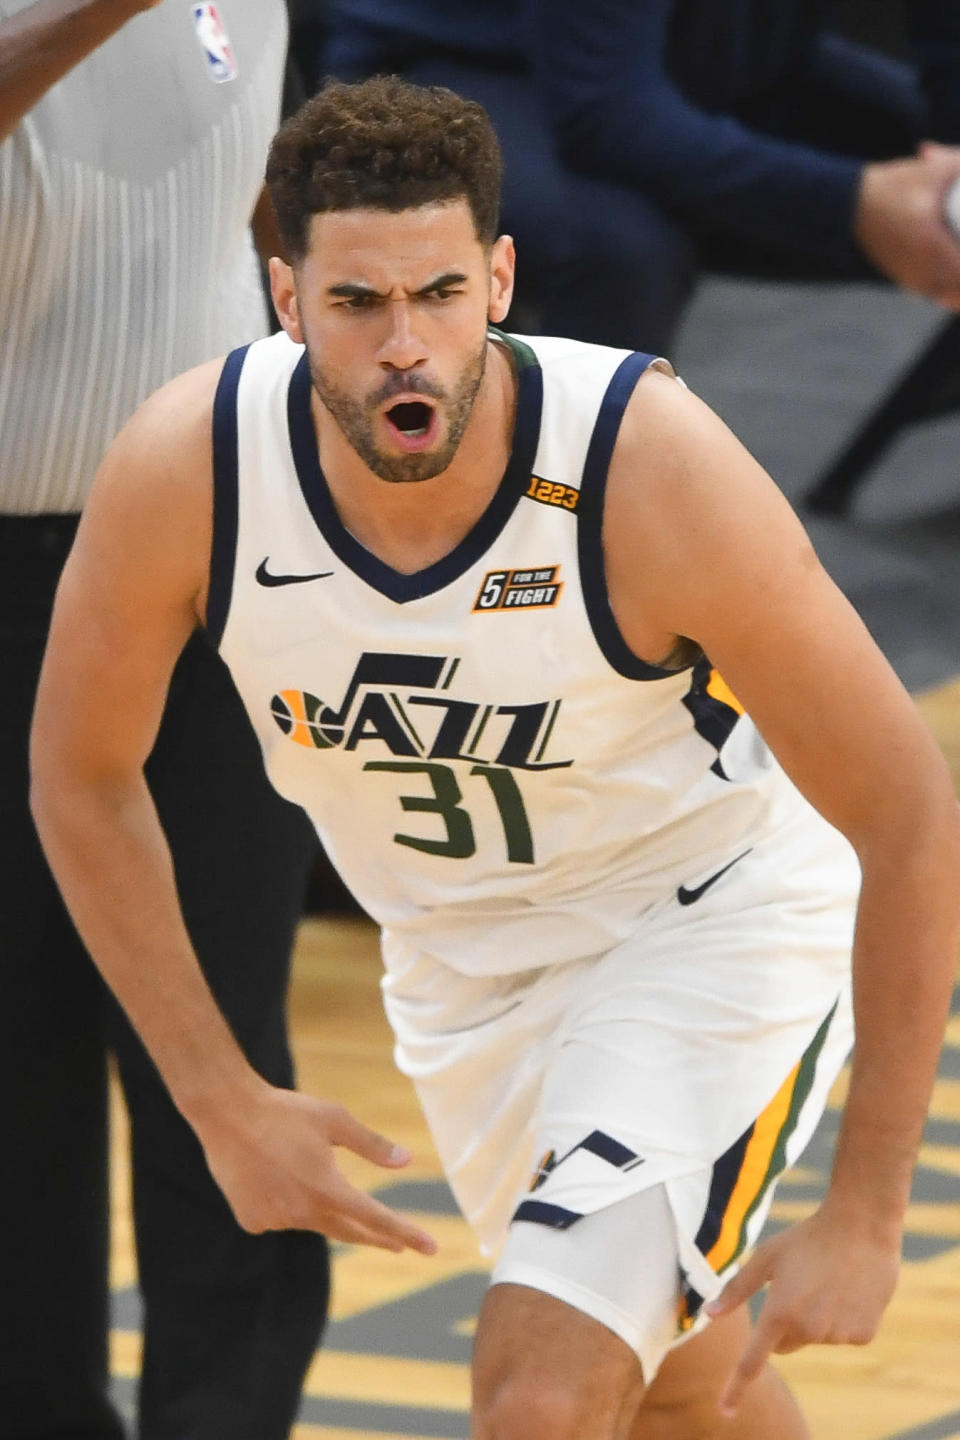 Utah Jazz forward Georges Niang reacts after making a 3-point goal against the Memphis Grizzlies during the first half of Game 3 of an NBA basketball first-round playoff series Saturday, May 29, 2021, in Memphis, Tenn. (AP Photo/John Amis)